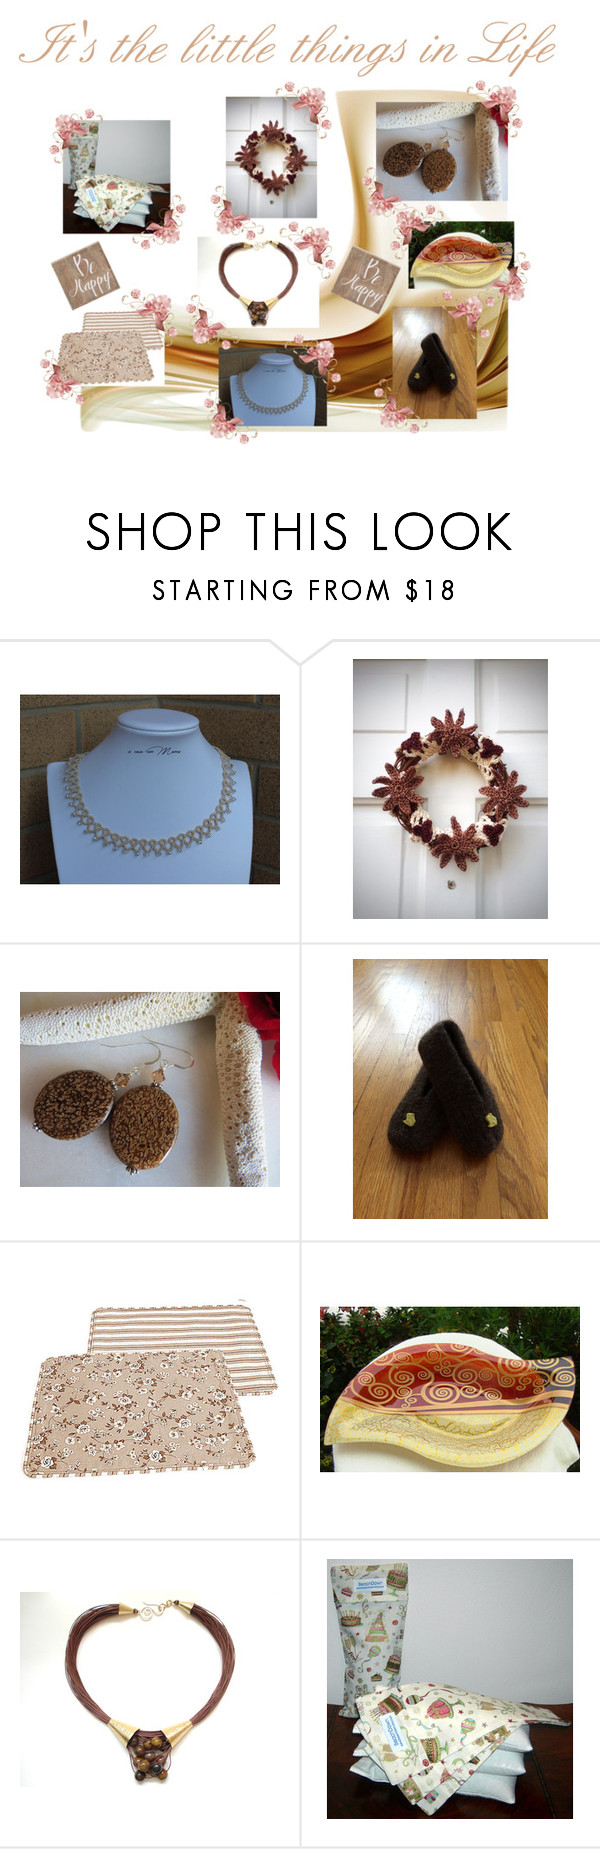 It's the little things in Life by cozeequilts on Polyvore featuring Belle Maison